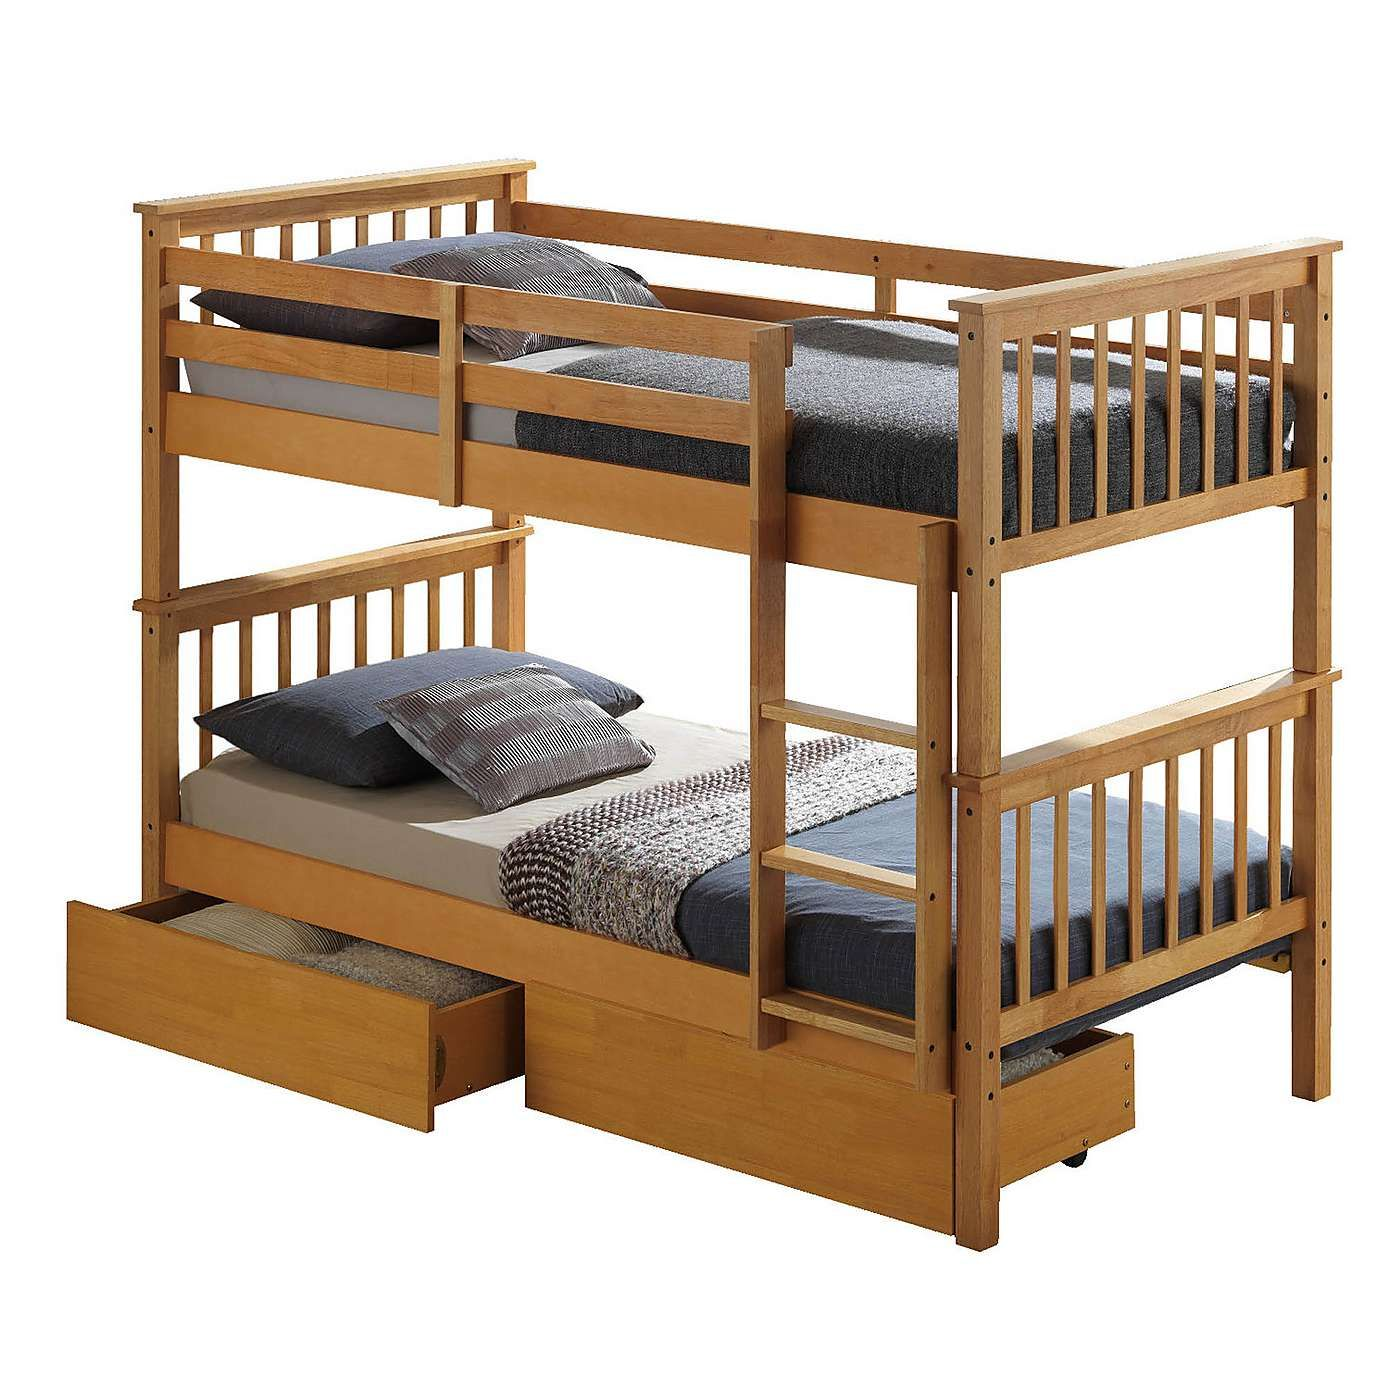 Loft bed plans for full size mattress  Artisan Beech Bunk Bed  Bunk bed Traditional and Bedrooms